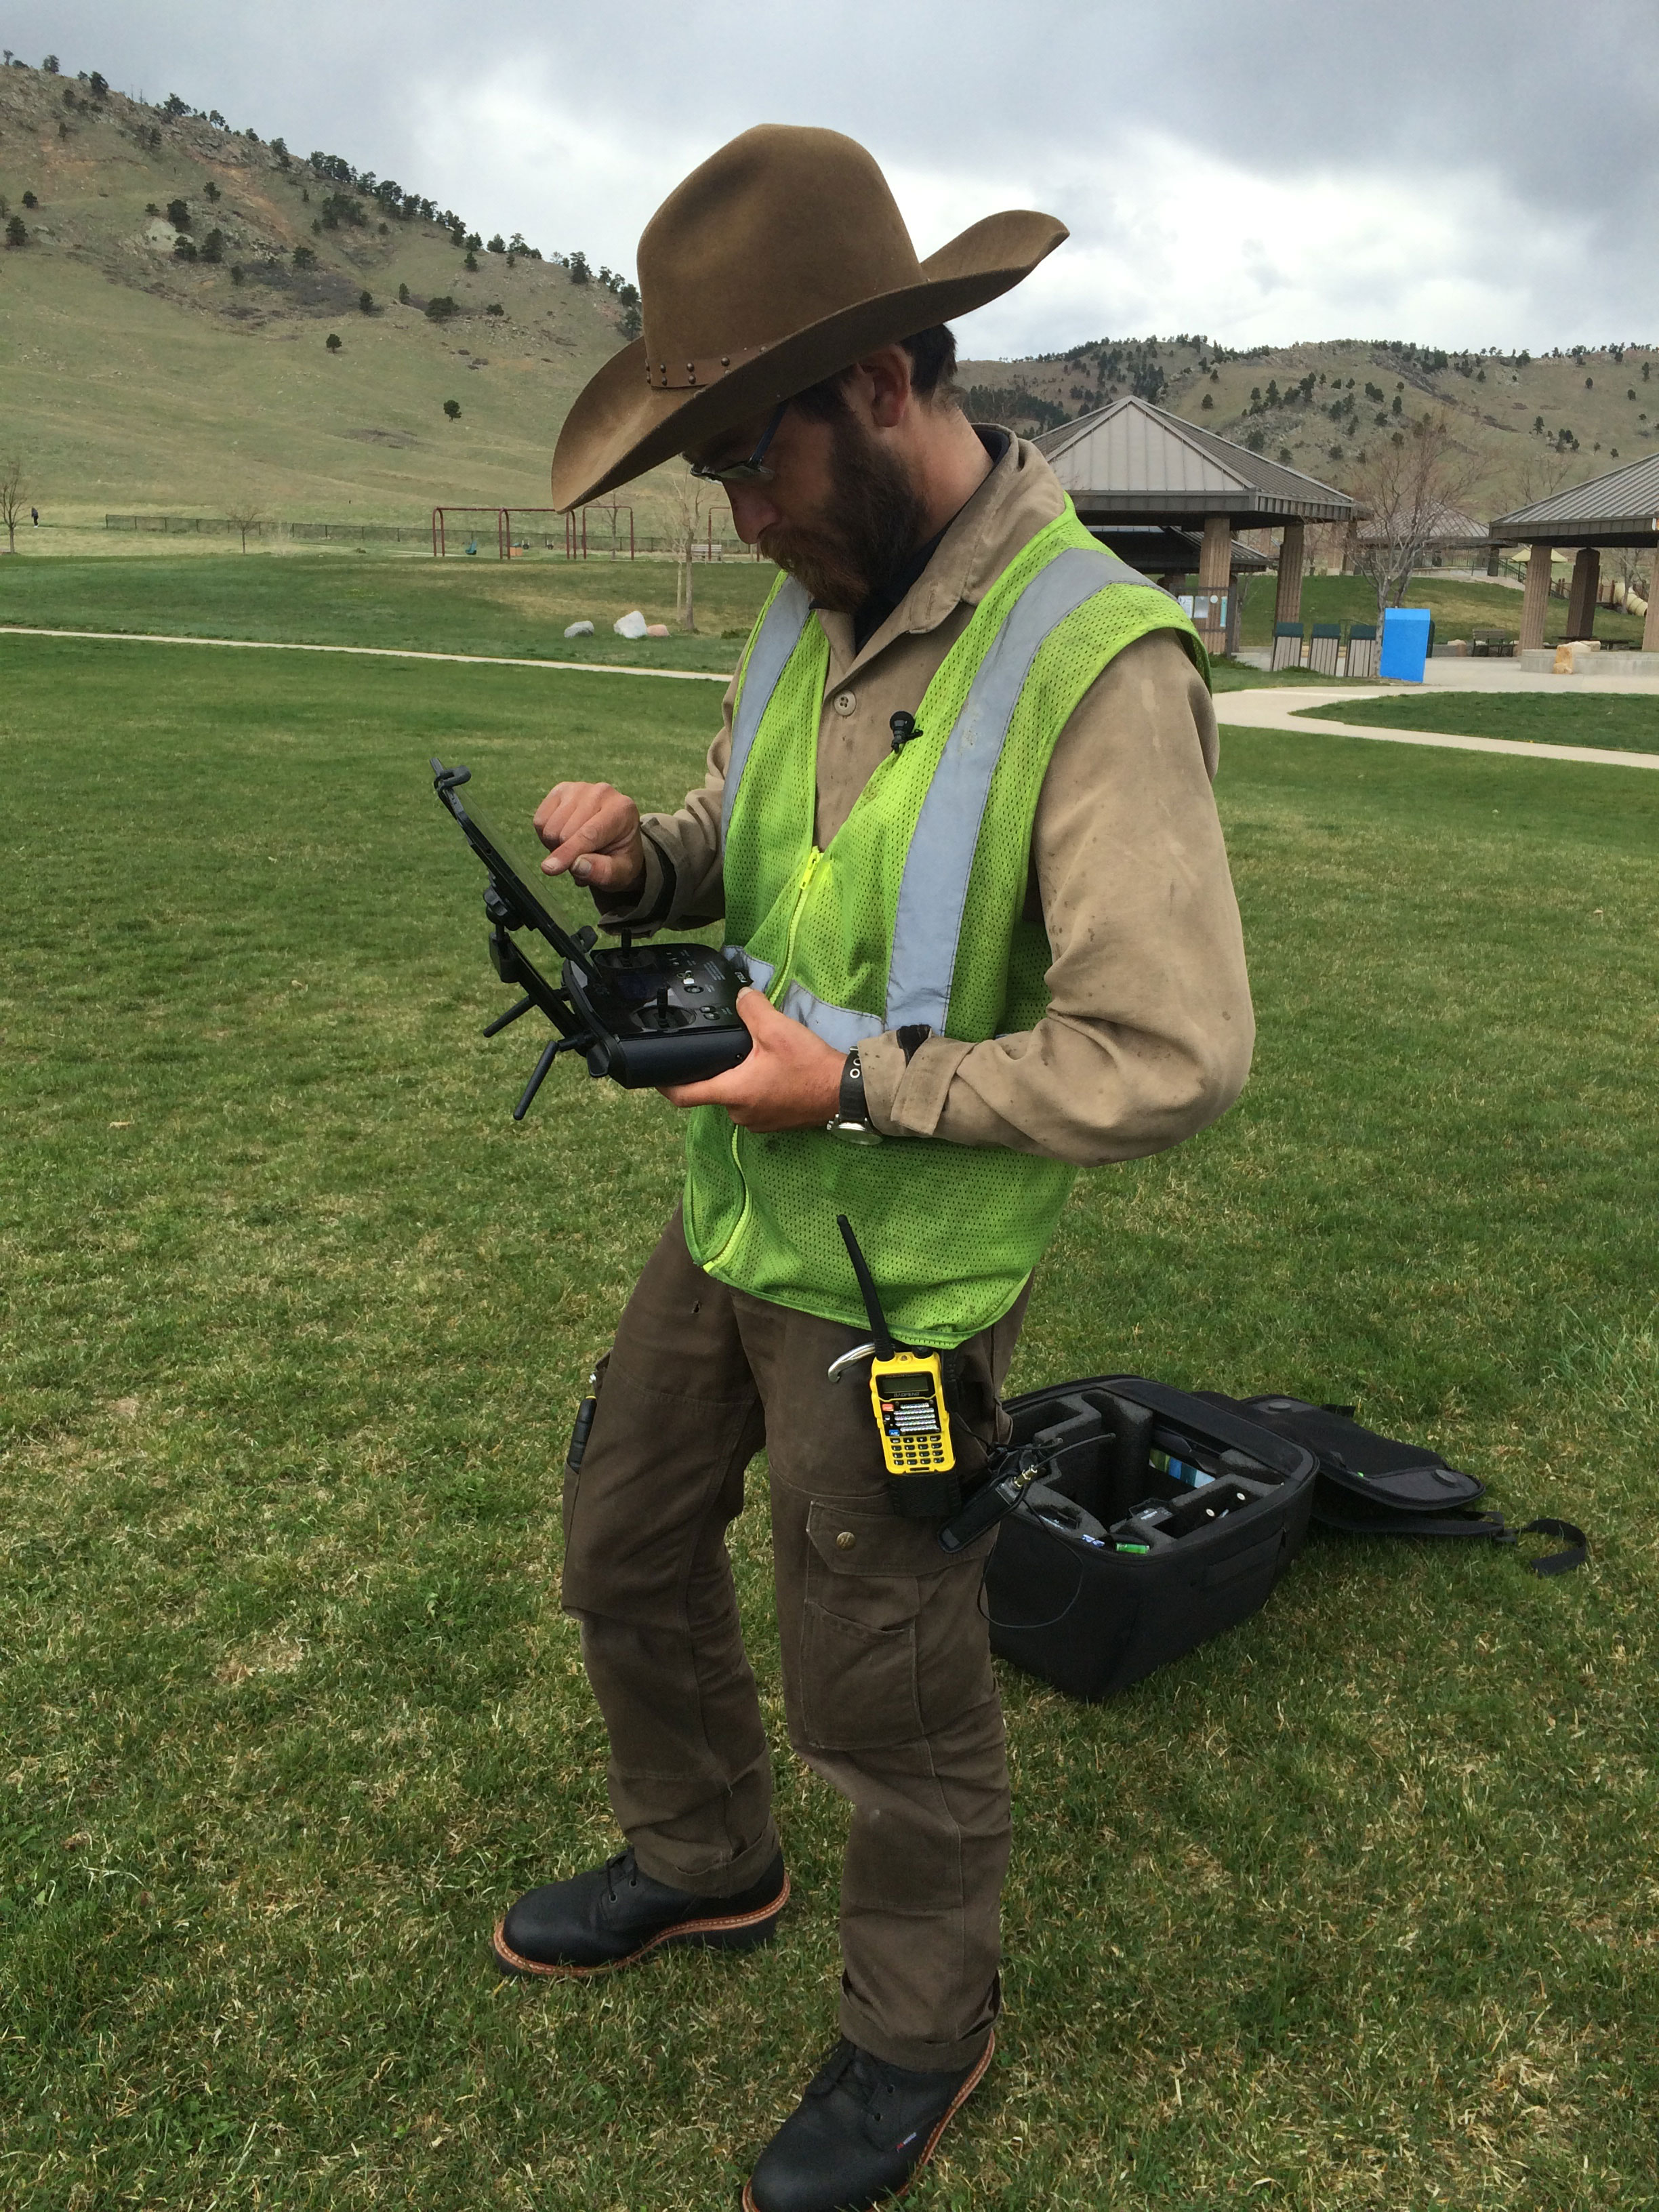 Boulder County resident Trevor Ycas launching a drone in Foothills Community Park Tuesday, where Ycas says the city gave him permission to fly the unmanned aircraft as long as he complies with FAA regulations (credit: CBS)